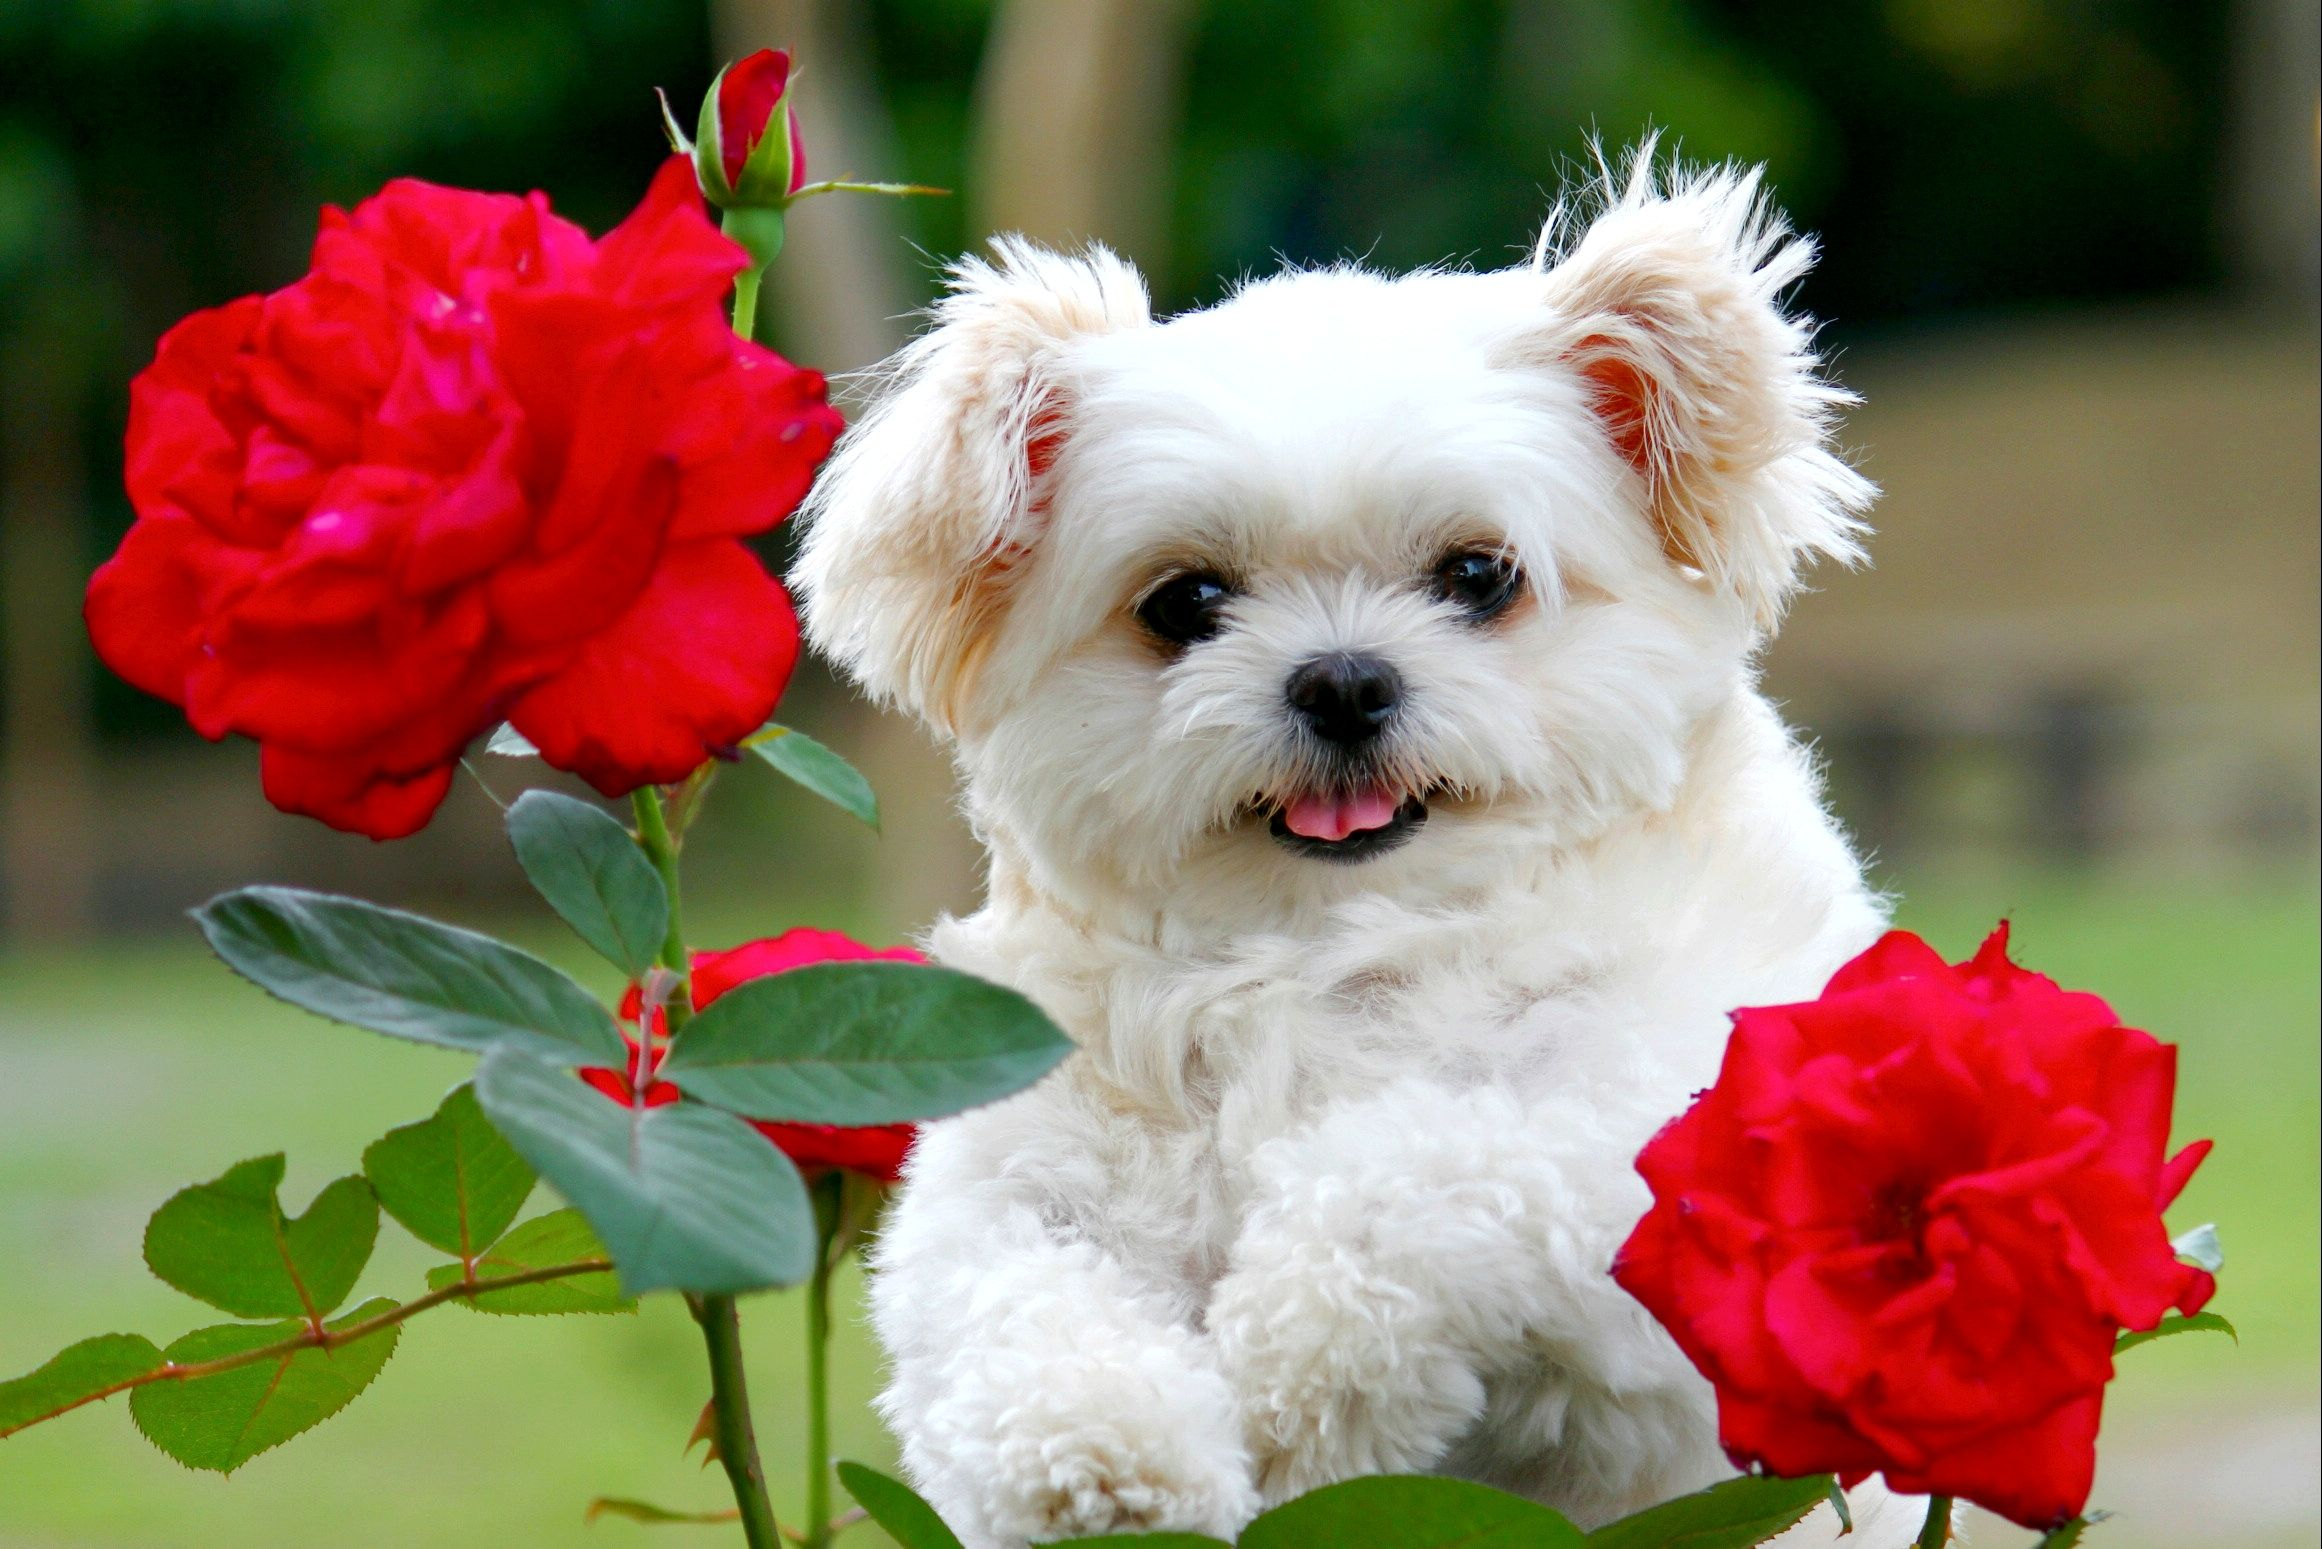 Desktop Cute And Funny Pics Of Dogs And Puppies Download Cute Fluffy Puppies Cute Puppy Wallpaper Cute White Puppies